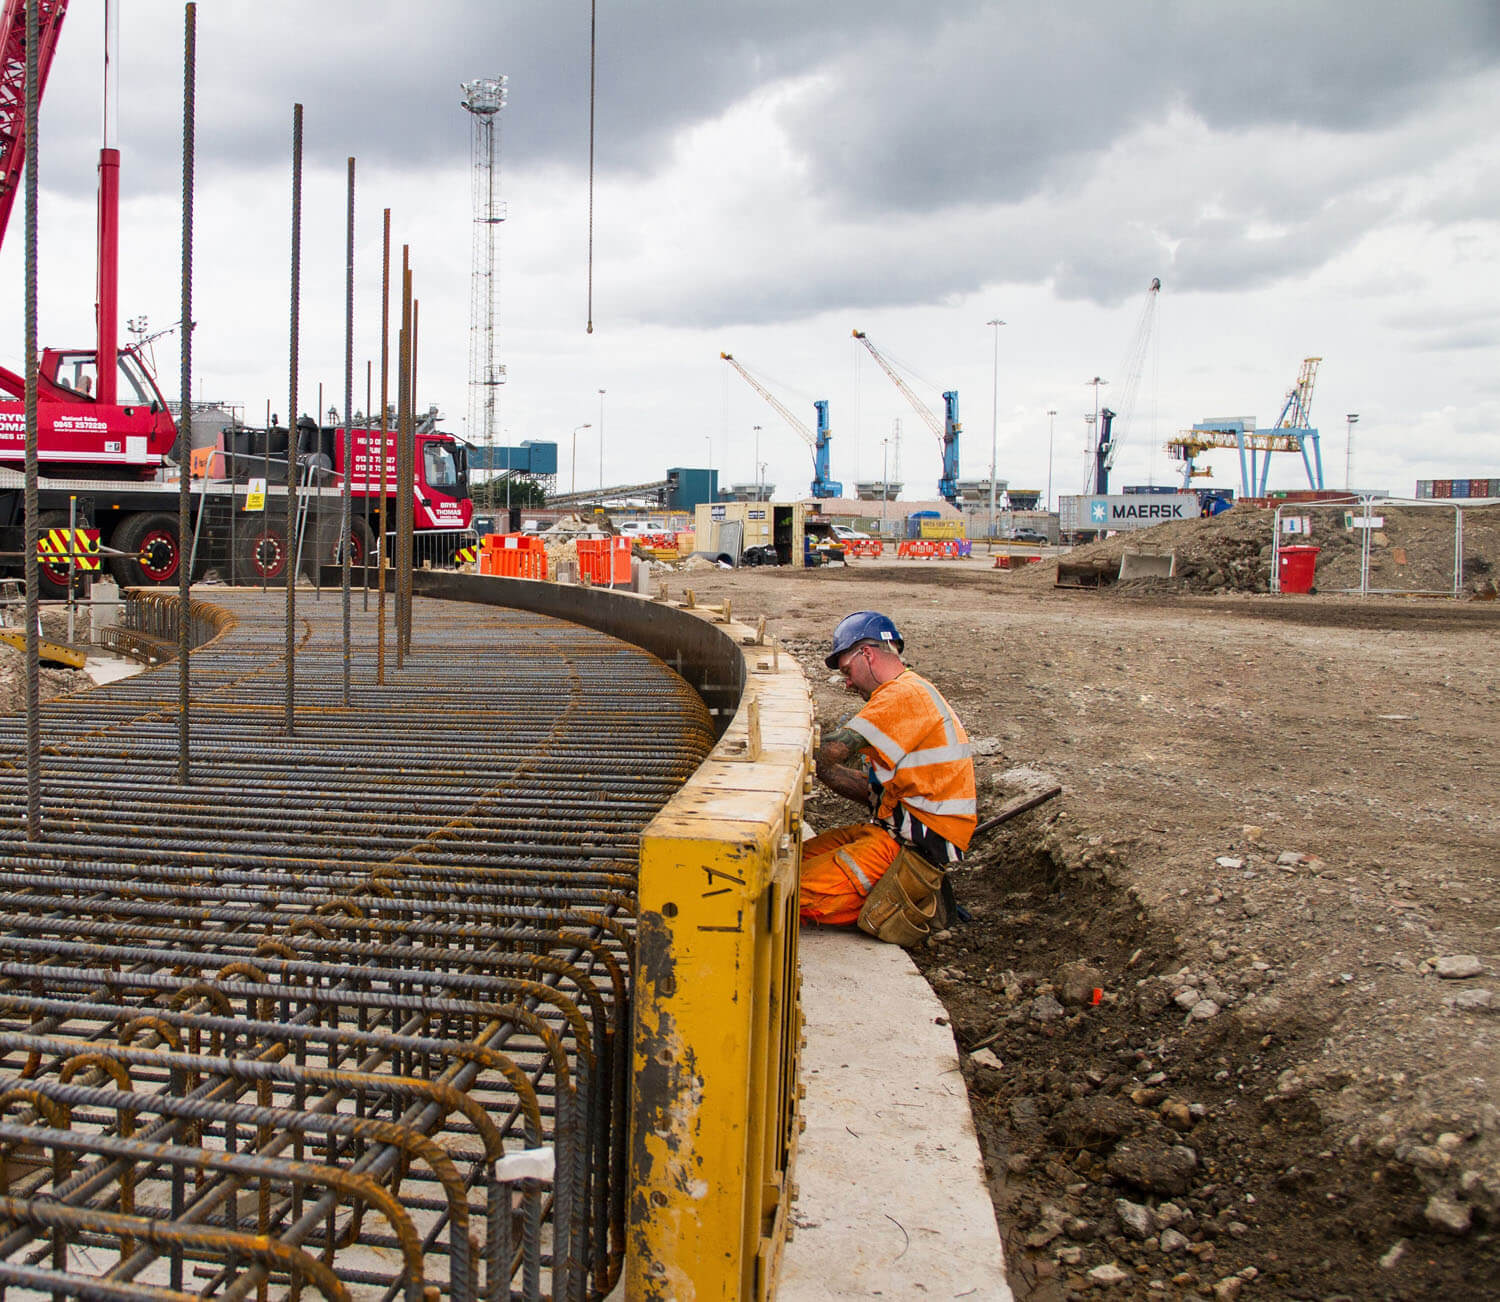 Spencer Group has begun work on the construction of one of three storage silos as part of integrated facilities for the handling, storage and rail-loading of wood pellets at the Port of Tyne.